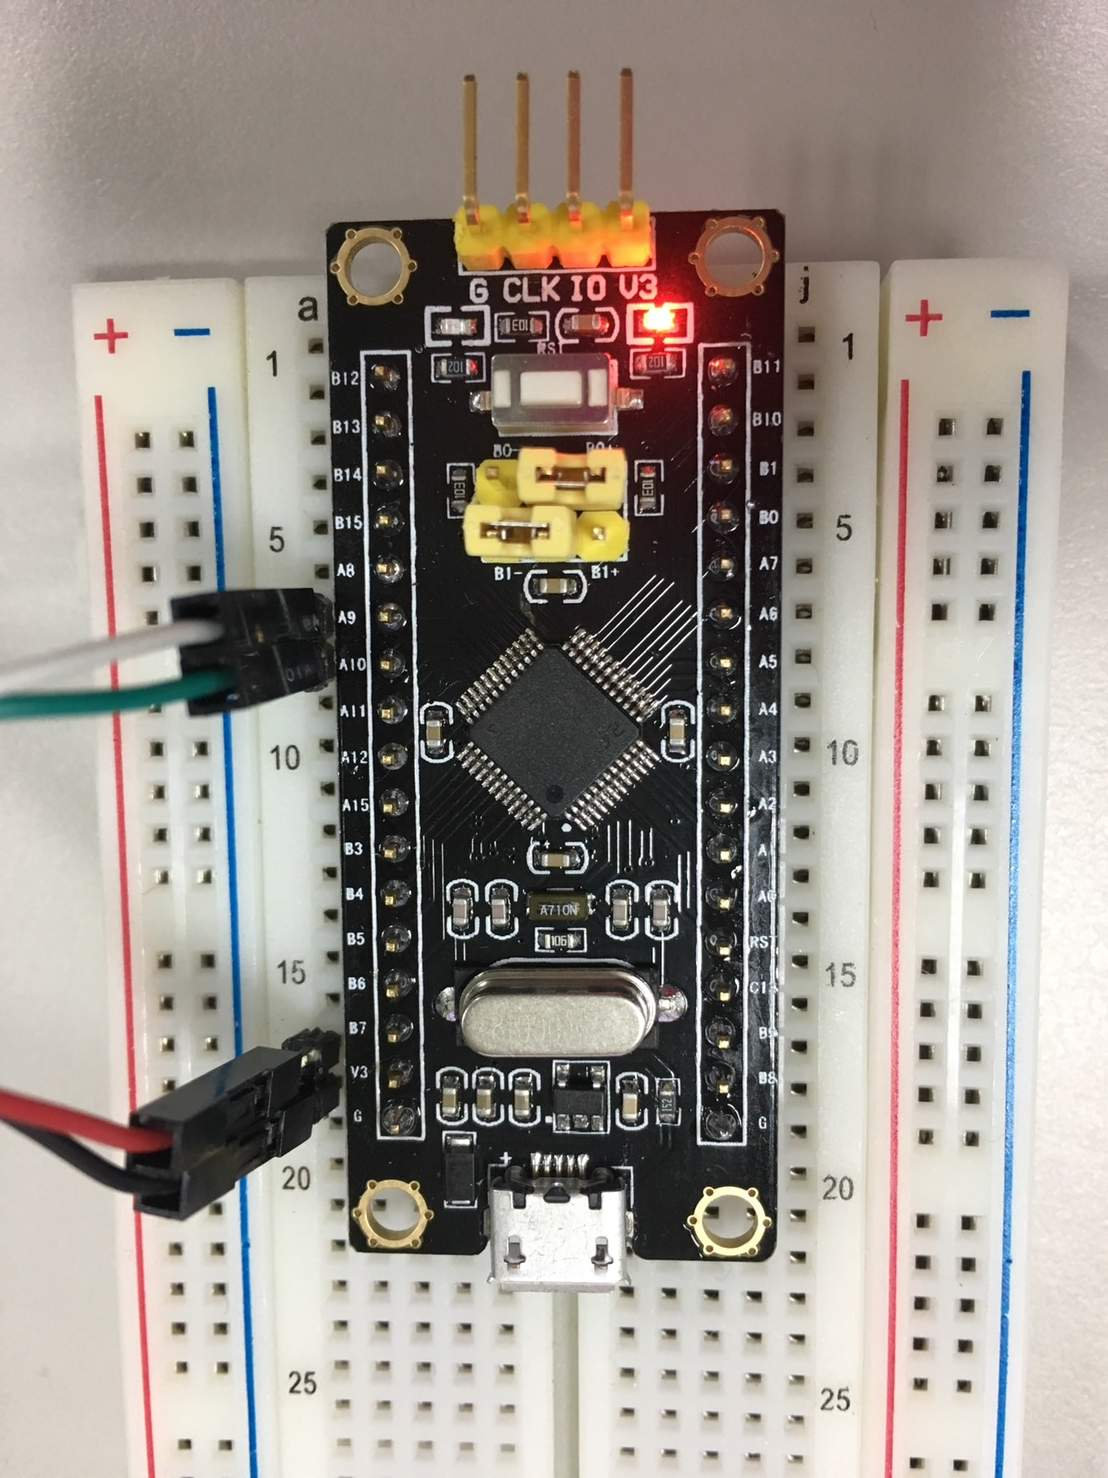 bv3ue radio blog: Black Pill(STM32F103C8T6) to work with Arduino